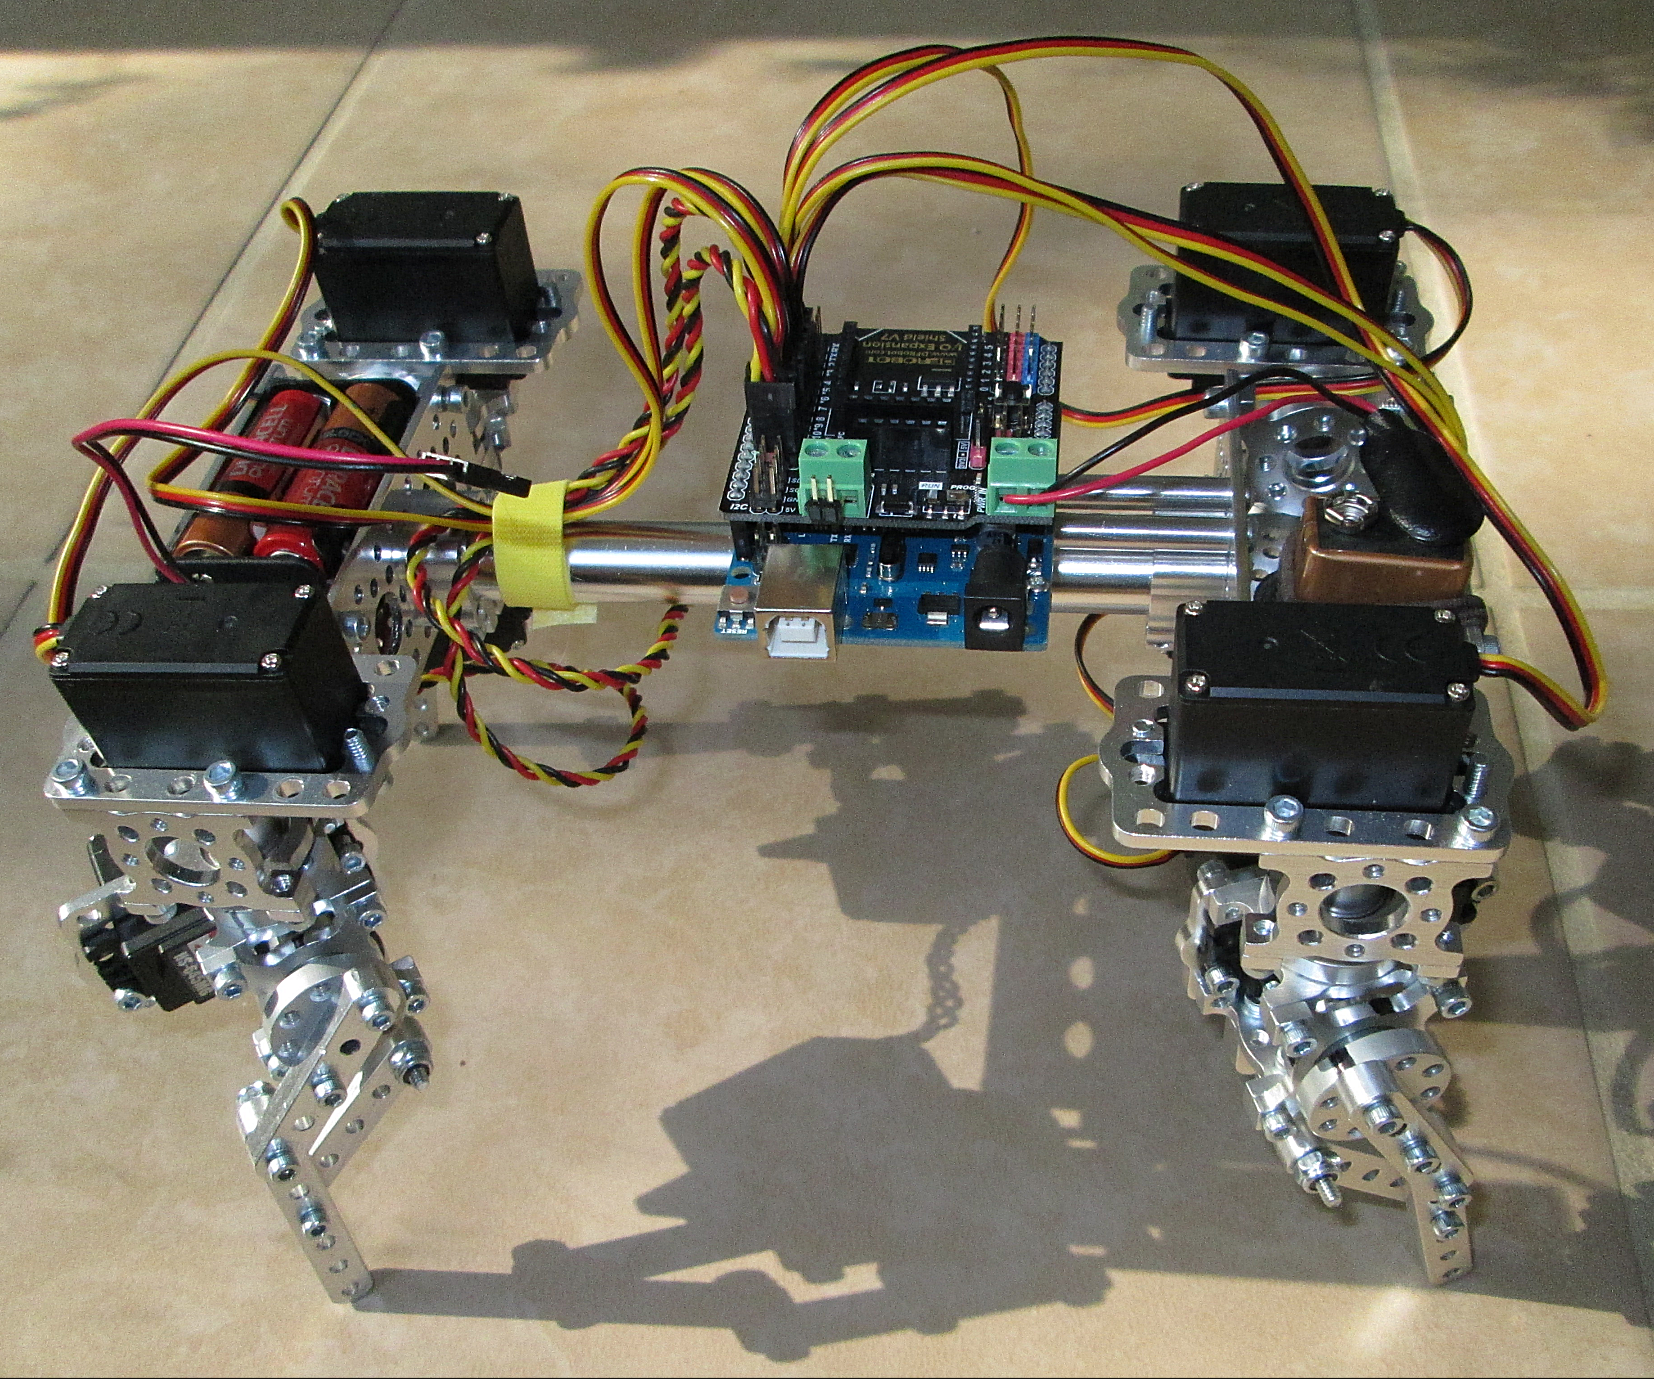 Build an Actobotics Quadruped Robot